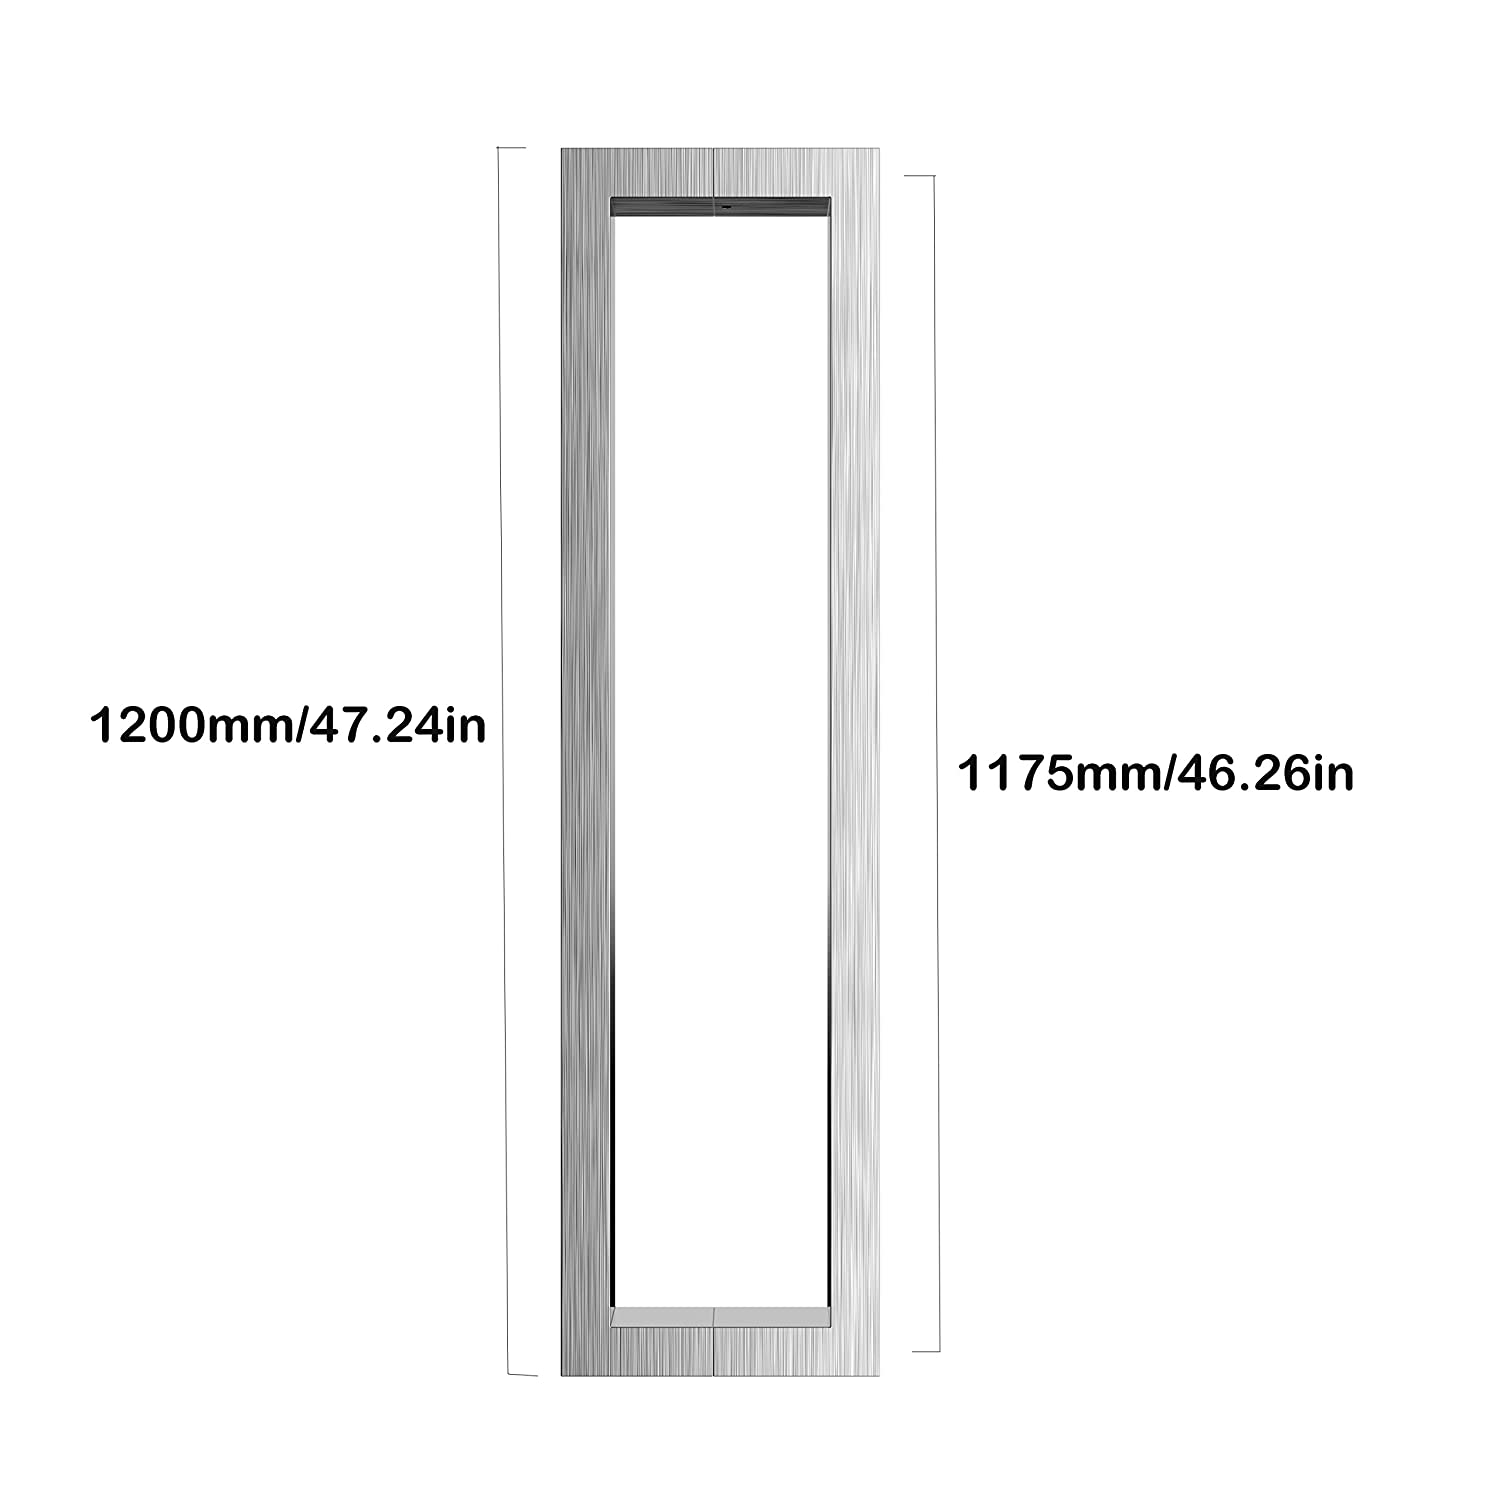 7//16 Length Small Parts Plain Finish #6-32 Threads Slotted Drive Pack of 10 Knurled Head 7//16 Length Stainless Steel Panel Screw